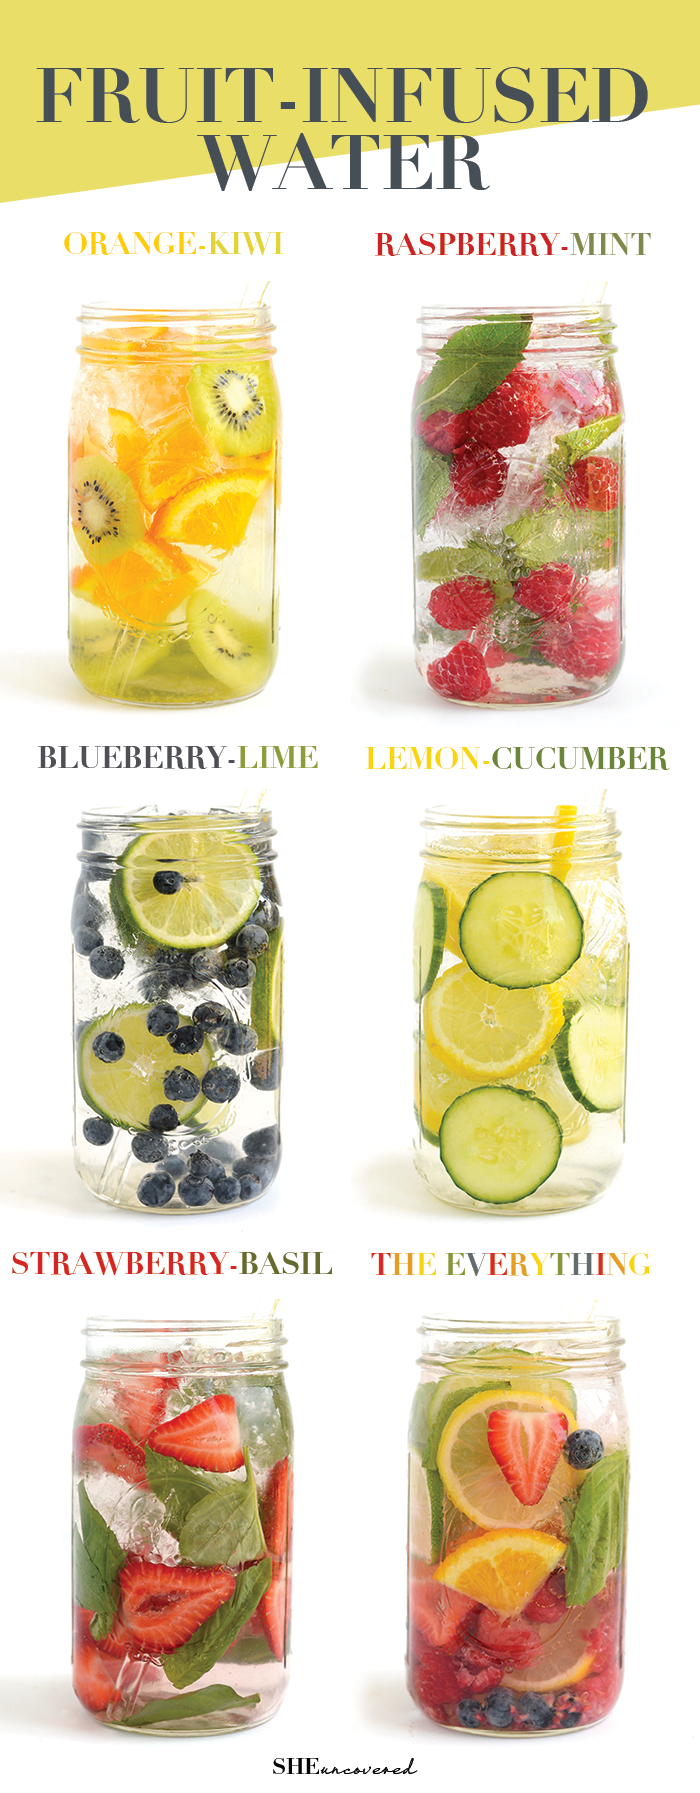 Fruit-infused-water1